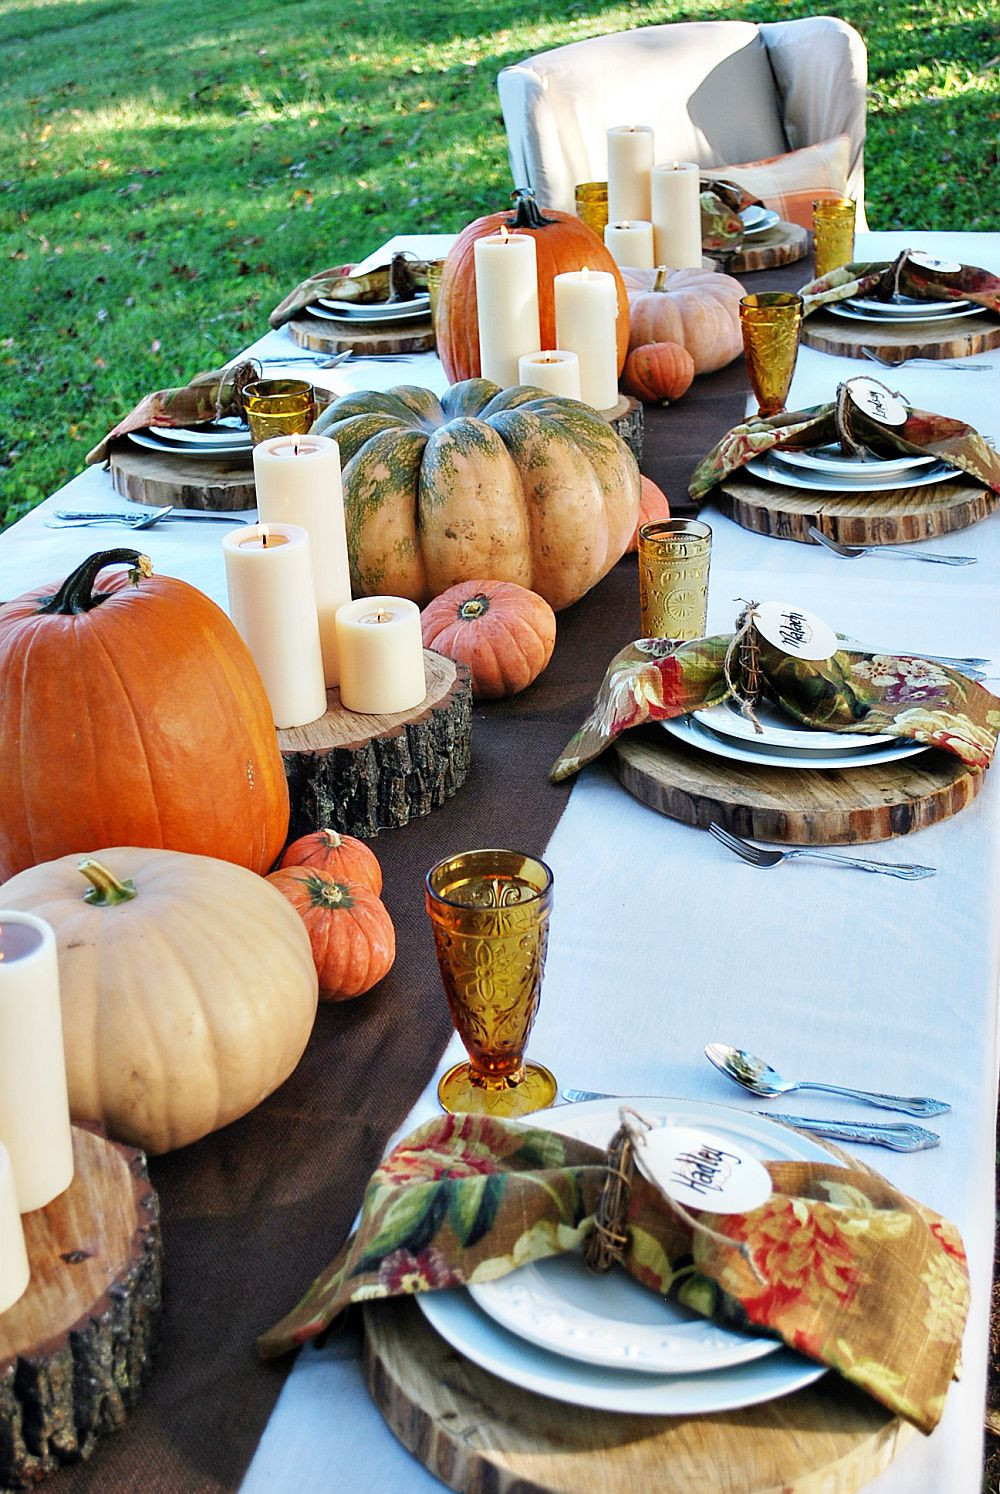 Turkey Decorations For Thanksgiving  15 Outdoor Thanksgiving Table Settings for Dining Alfresco